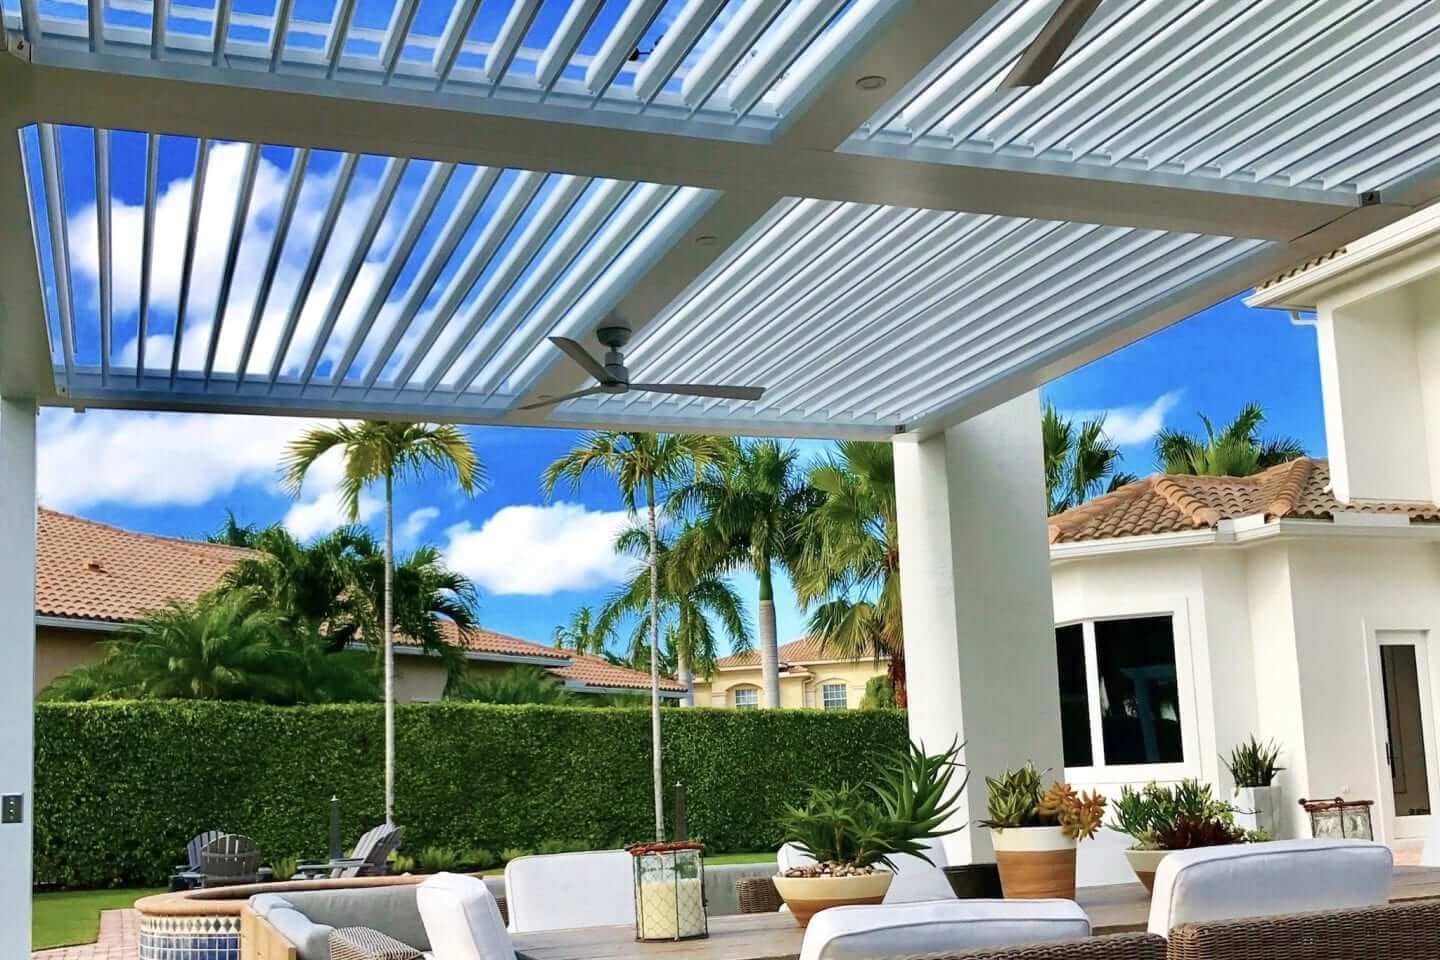 White pergola with metal louvers pivoted open over white cushioned dining chairs with plants on table and palm trees in distance